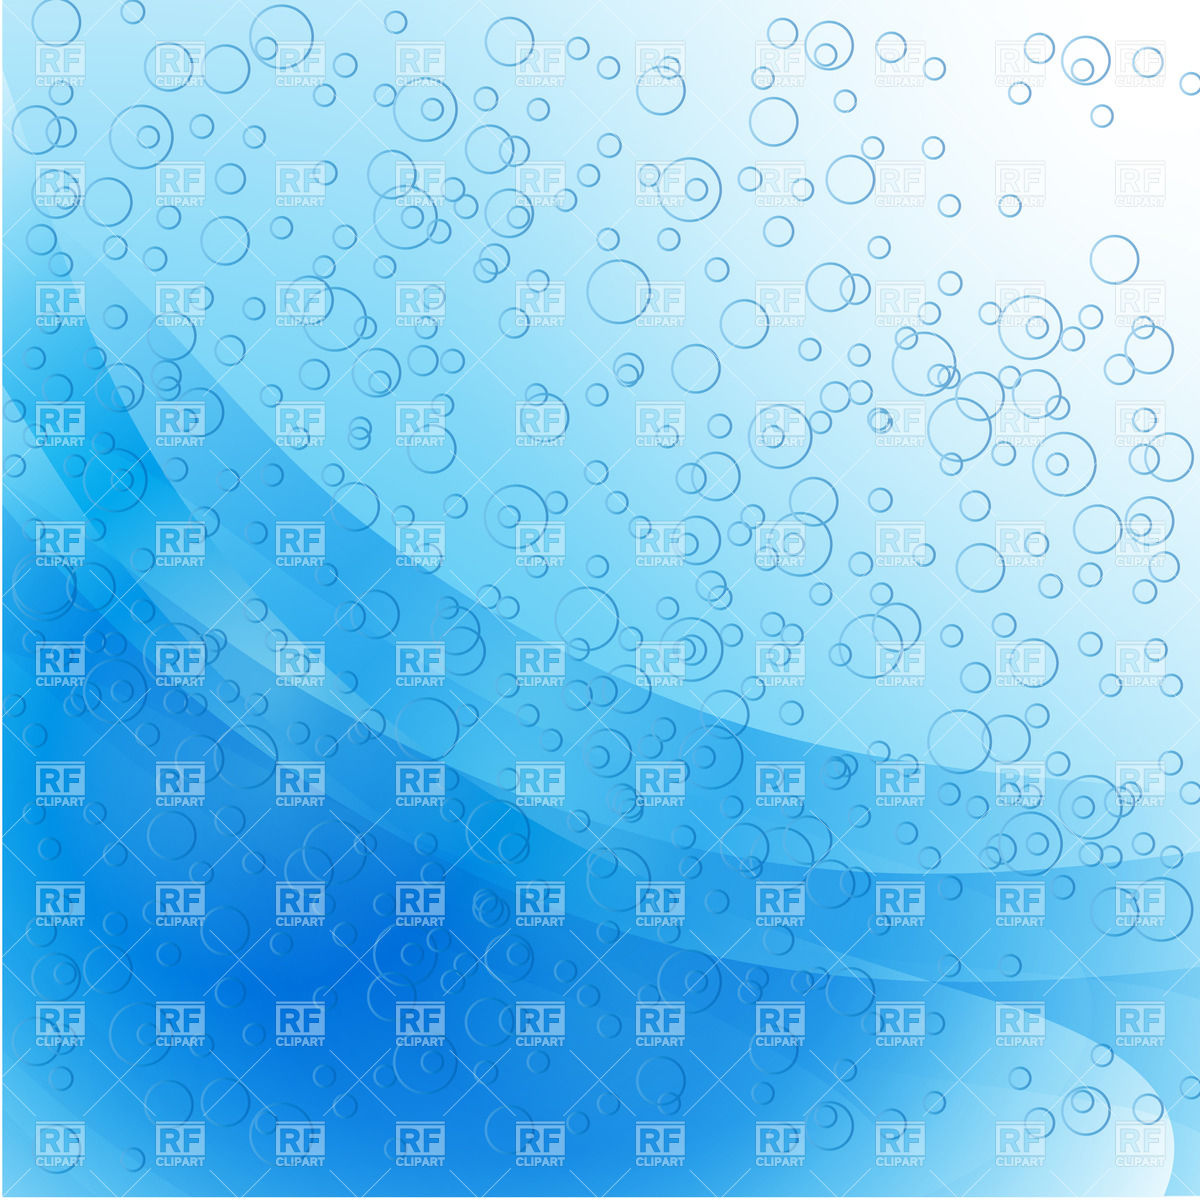 Free water clipart backgrounds clipground blue water background with voltagebd Images